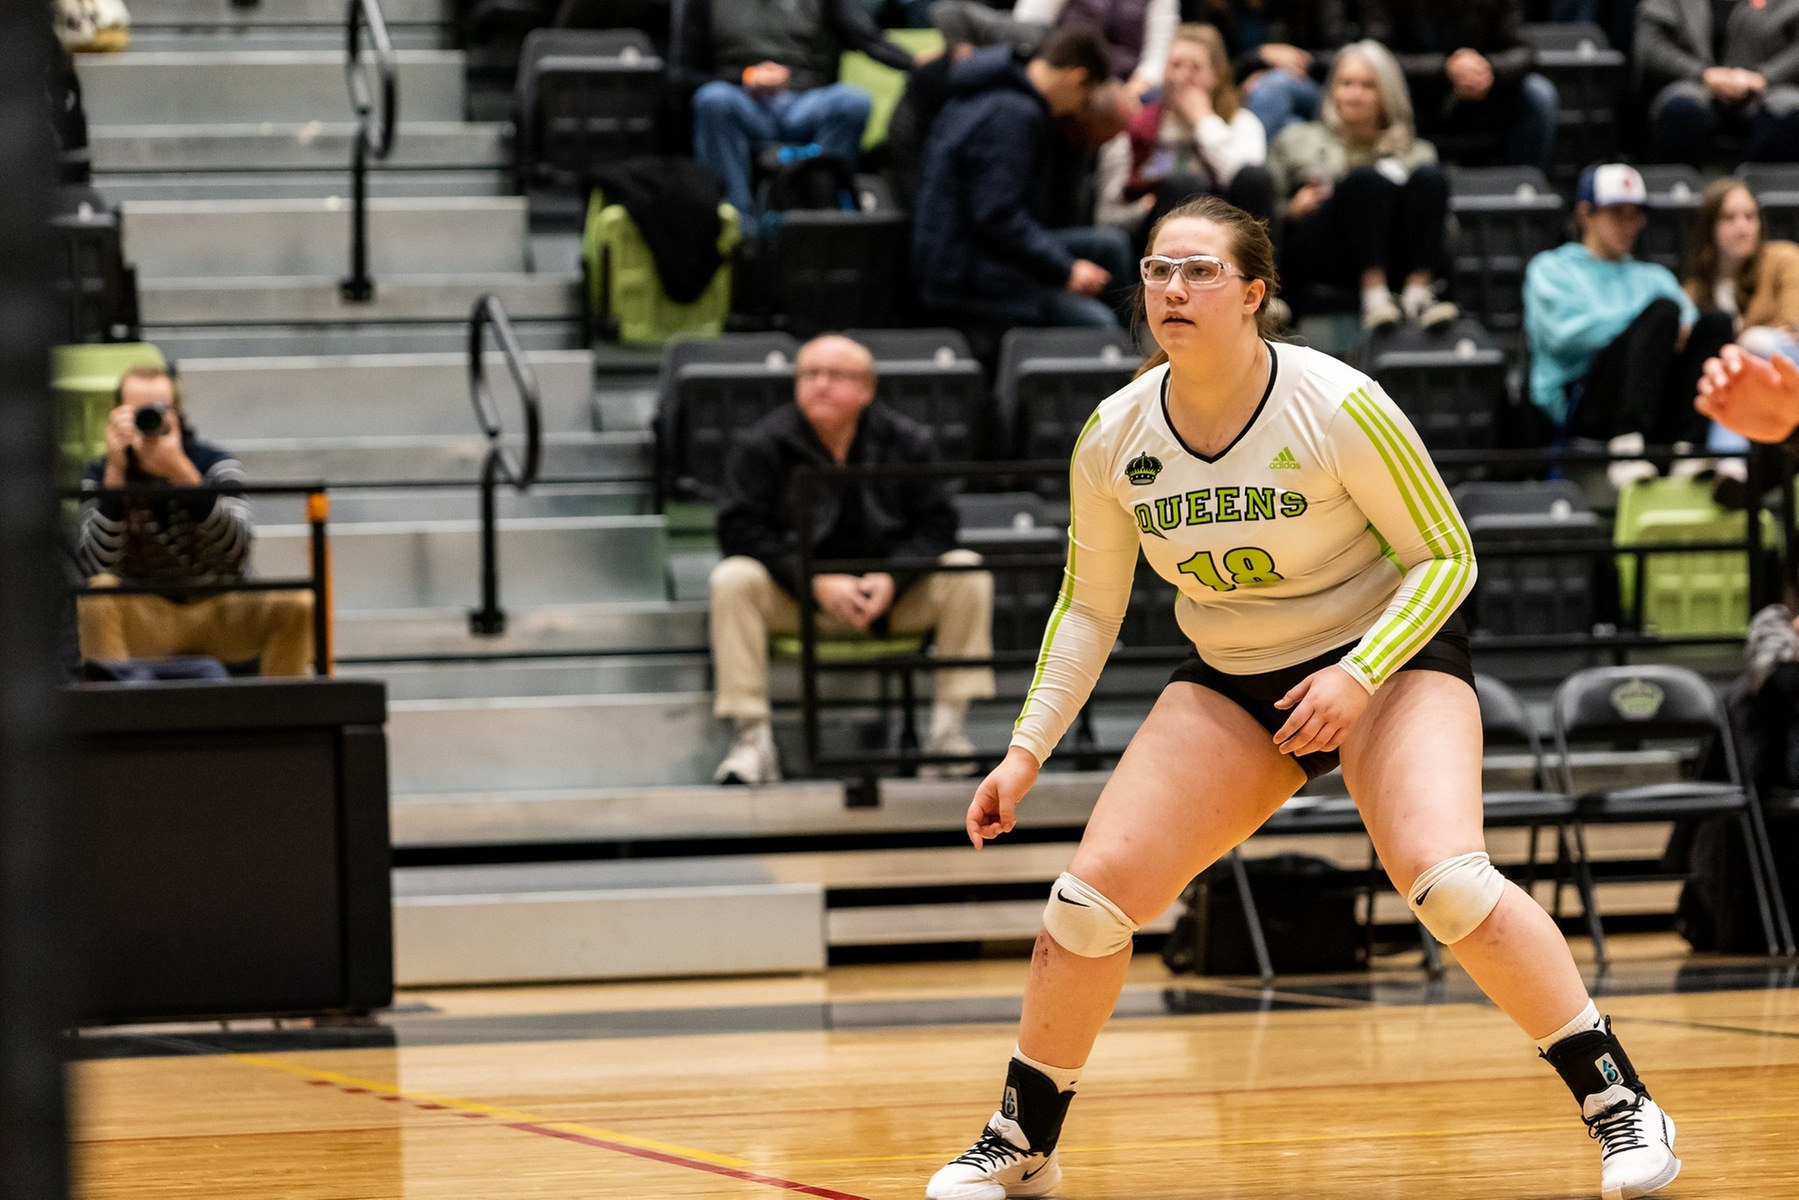 Setter Emma Letkeman (18) had a game high 27 assists